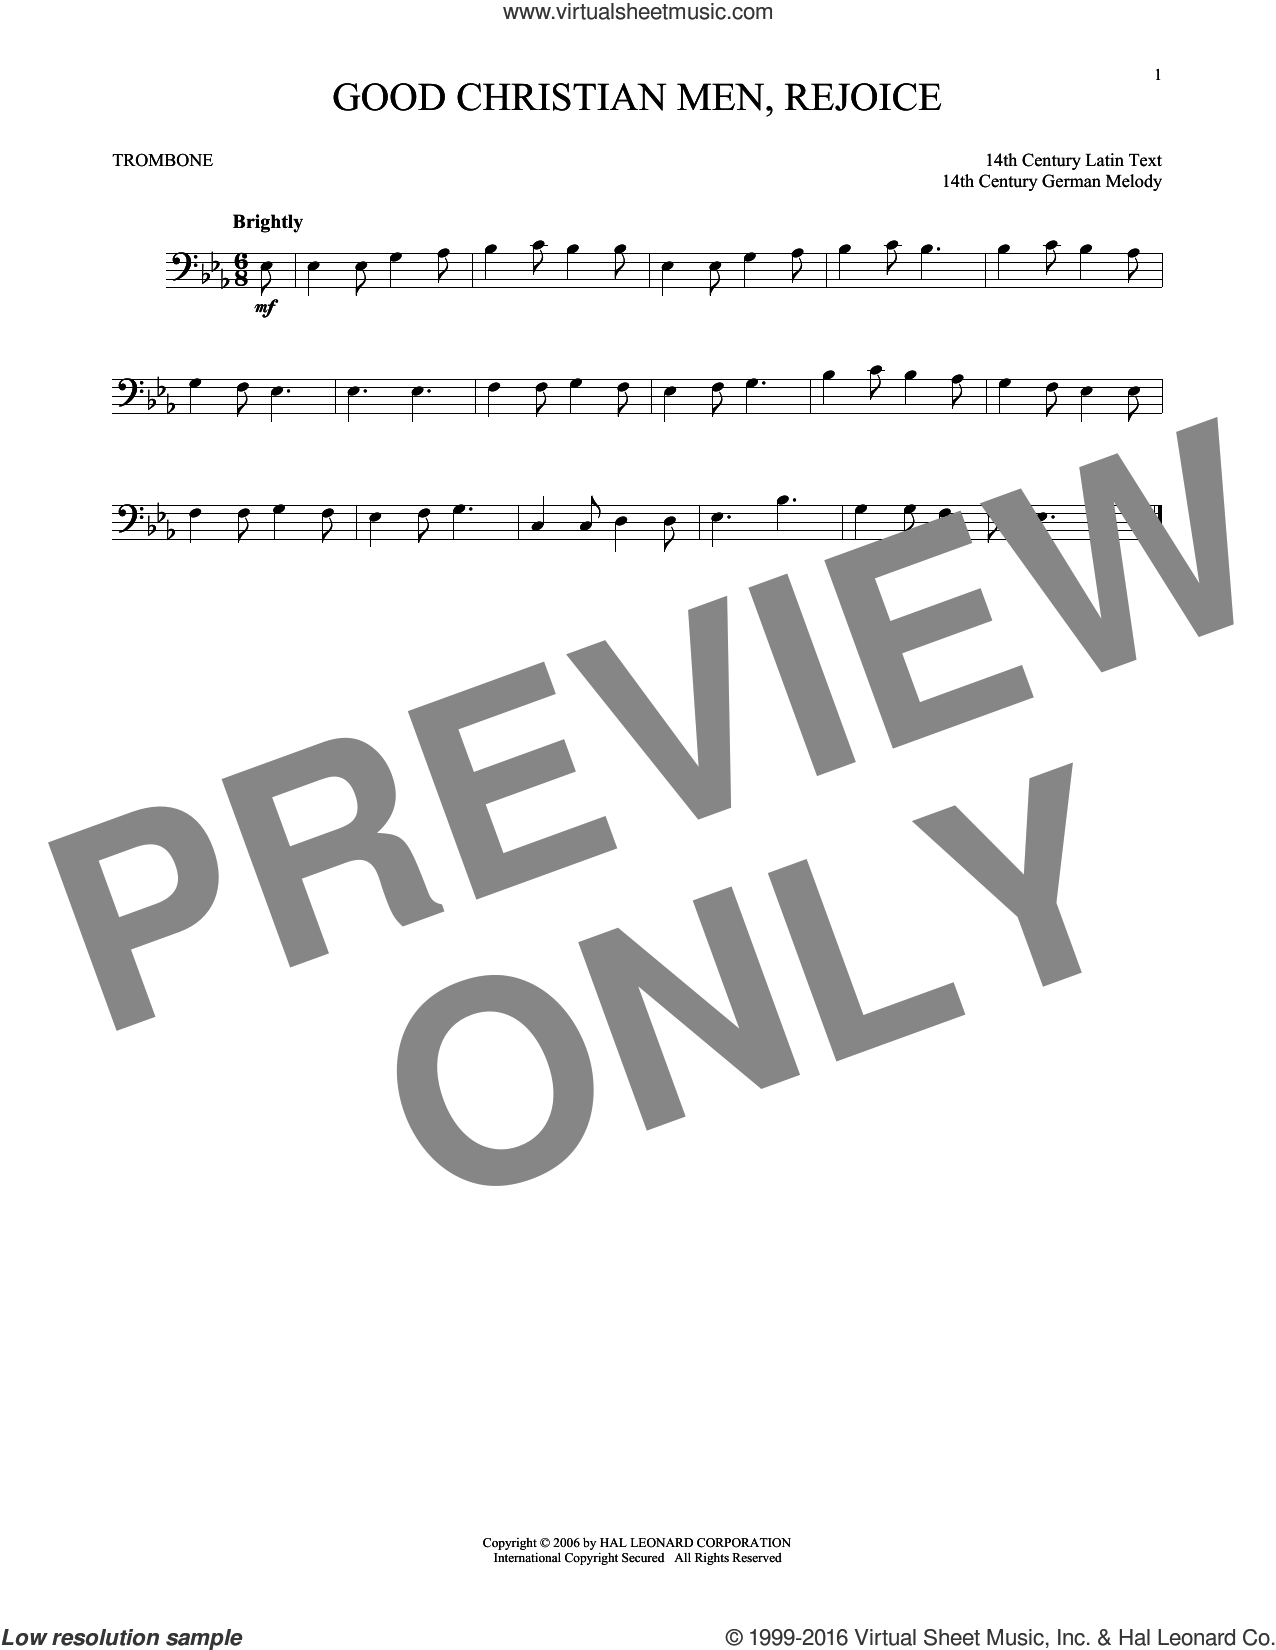 Good Christian Men, Rejoice sheet music for trombone solo by Anonymous